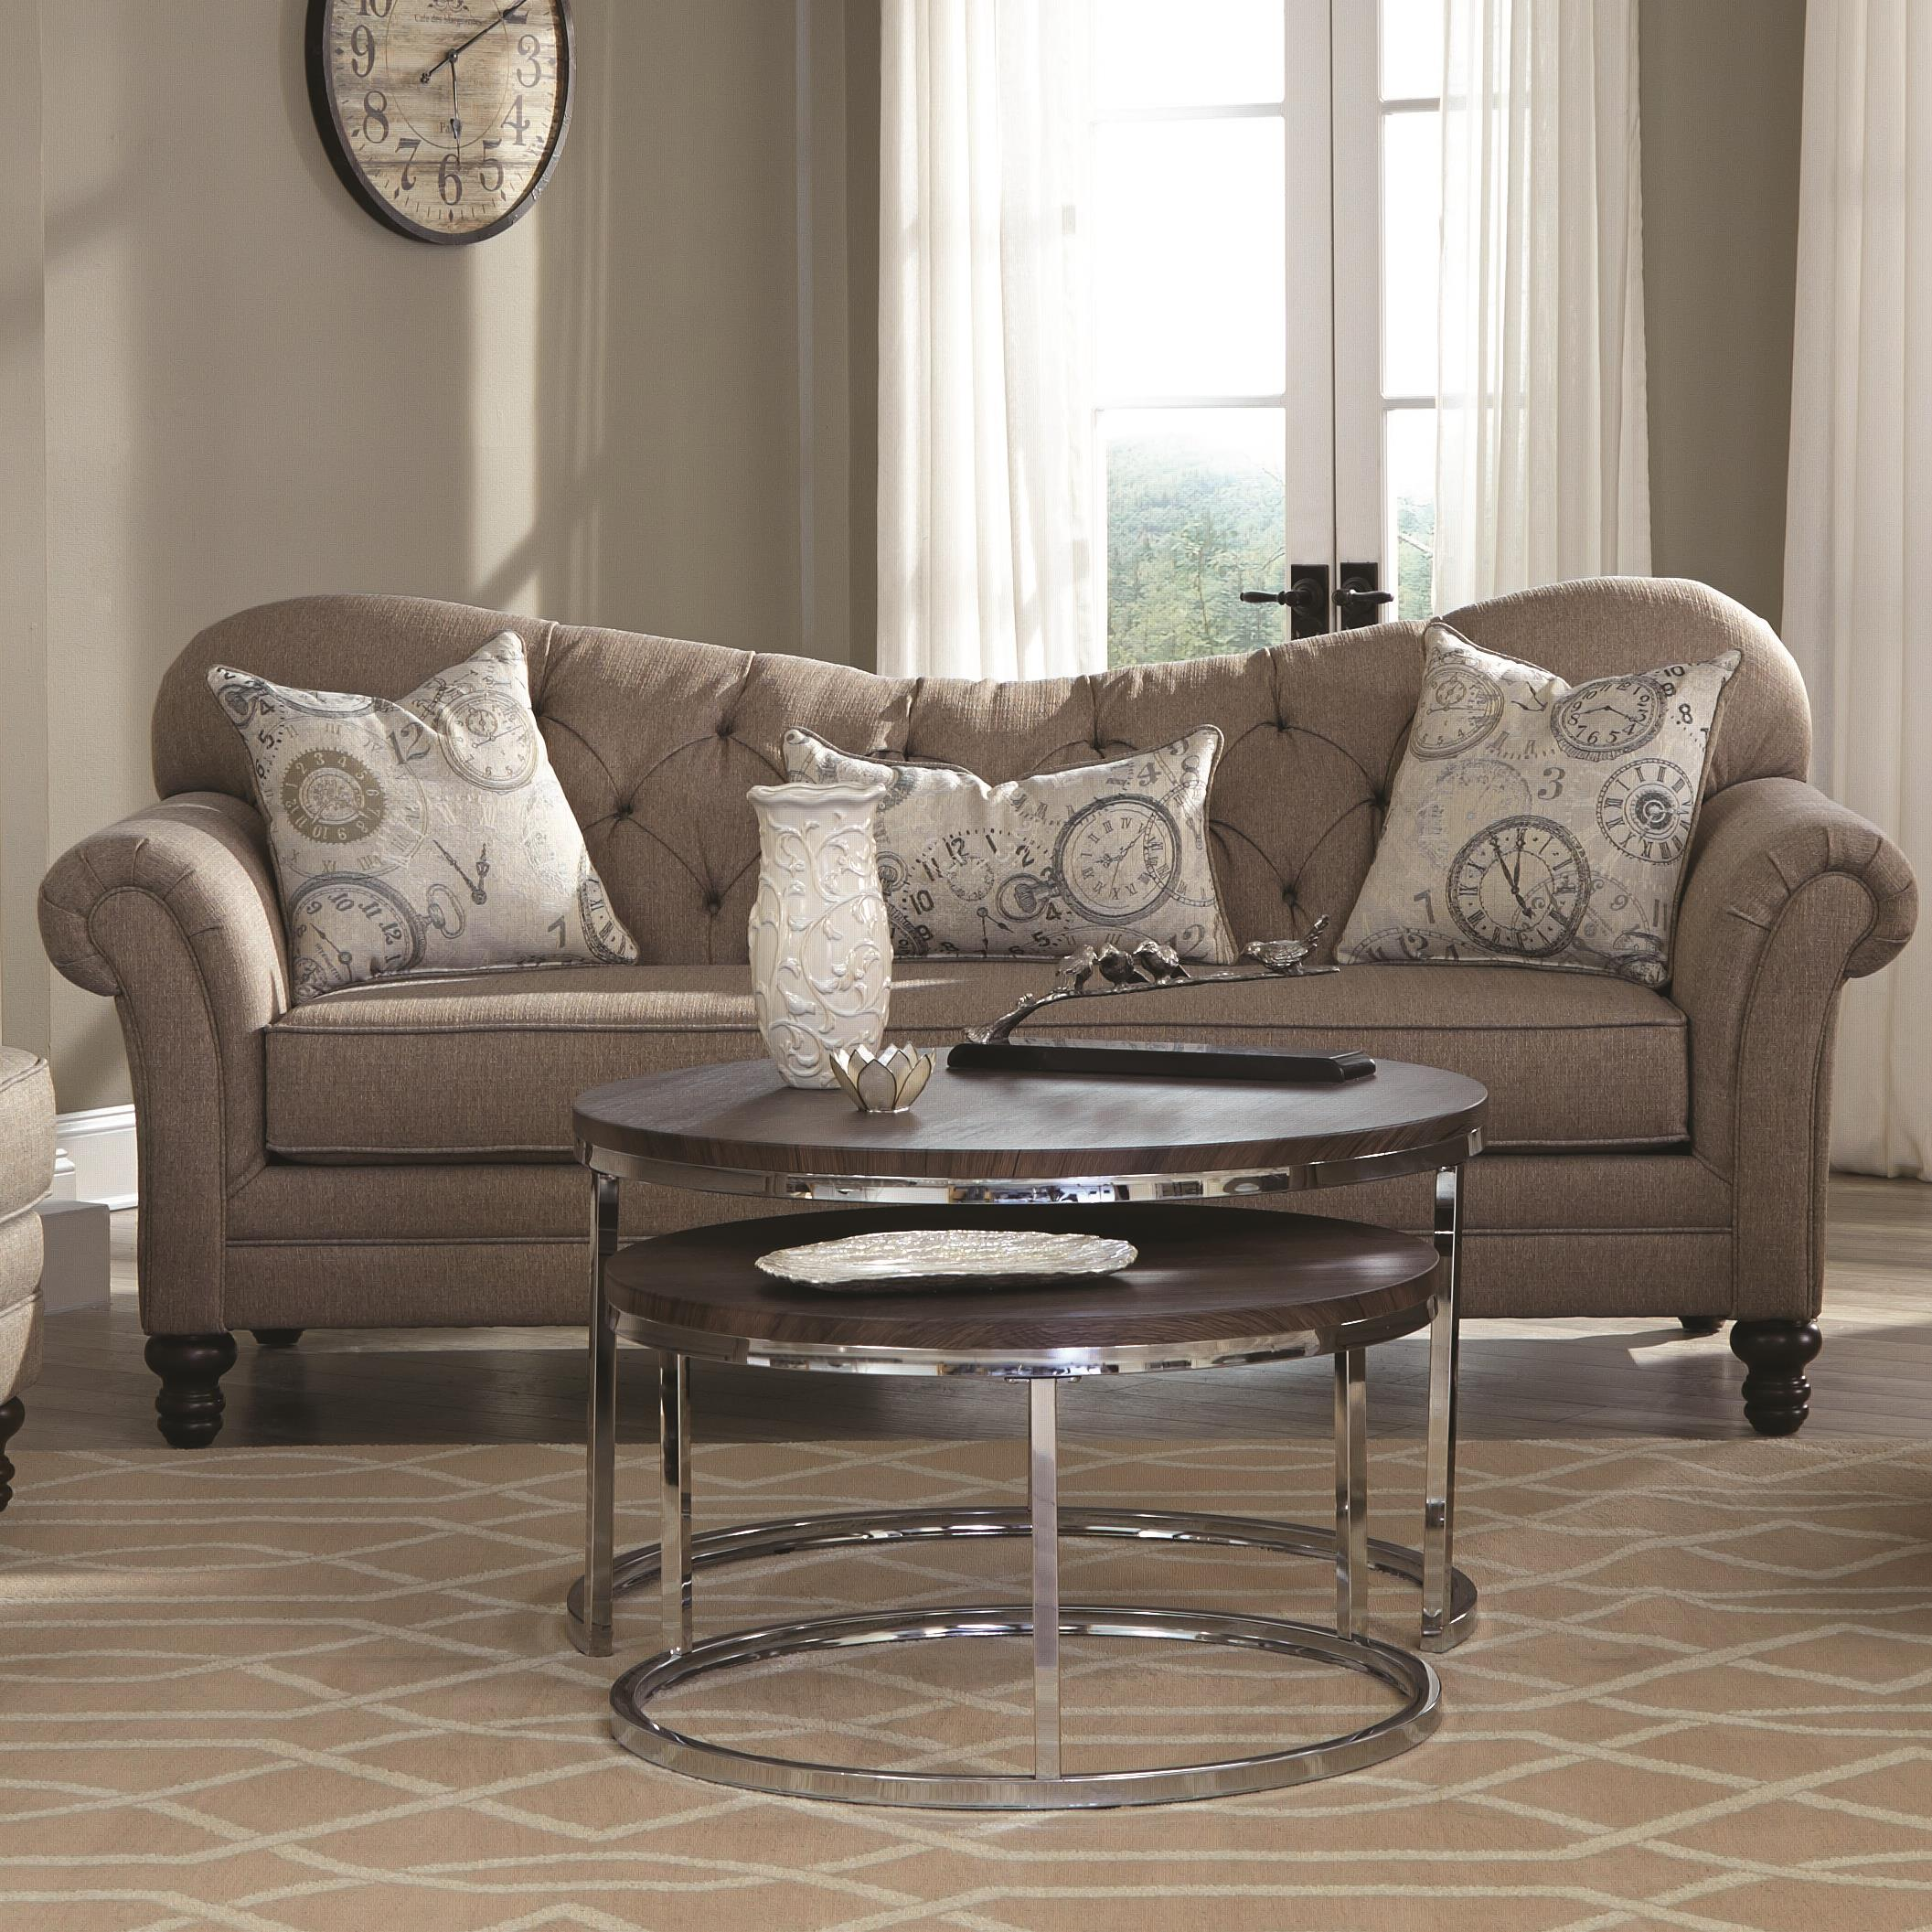 Coaster Carnahan Sofa - Item Number: 505251